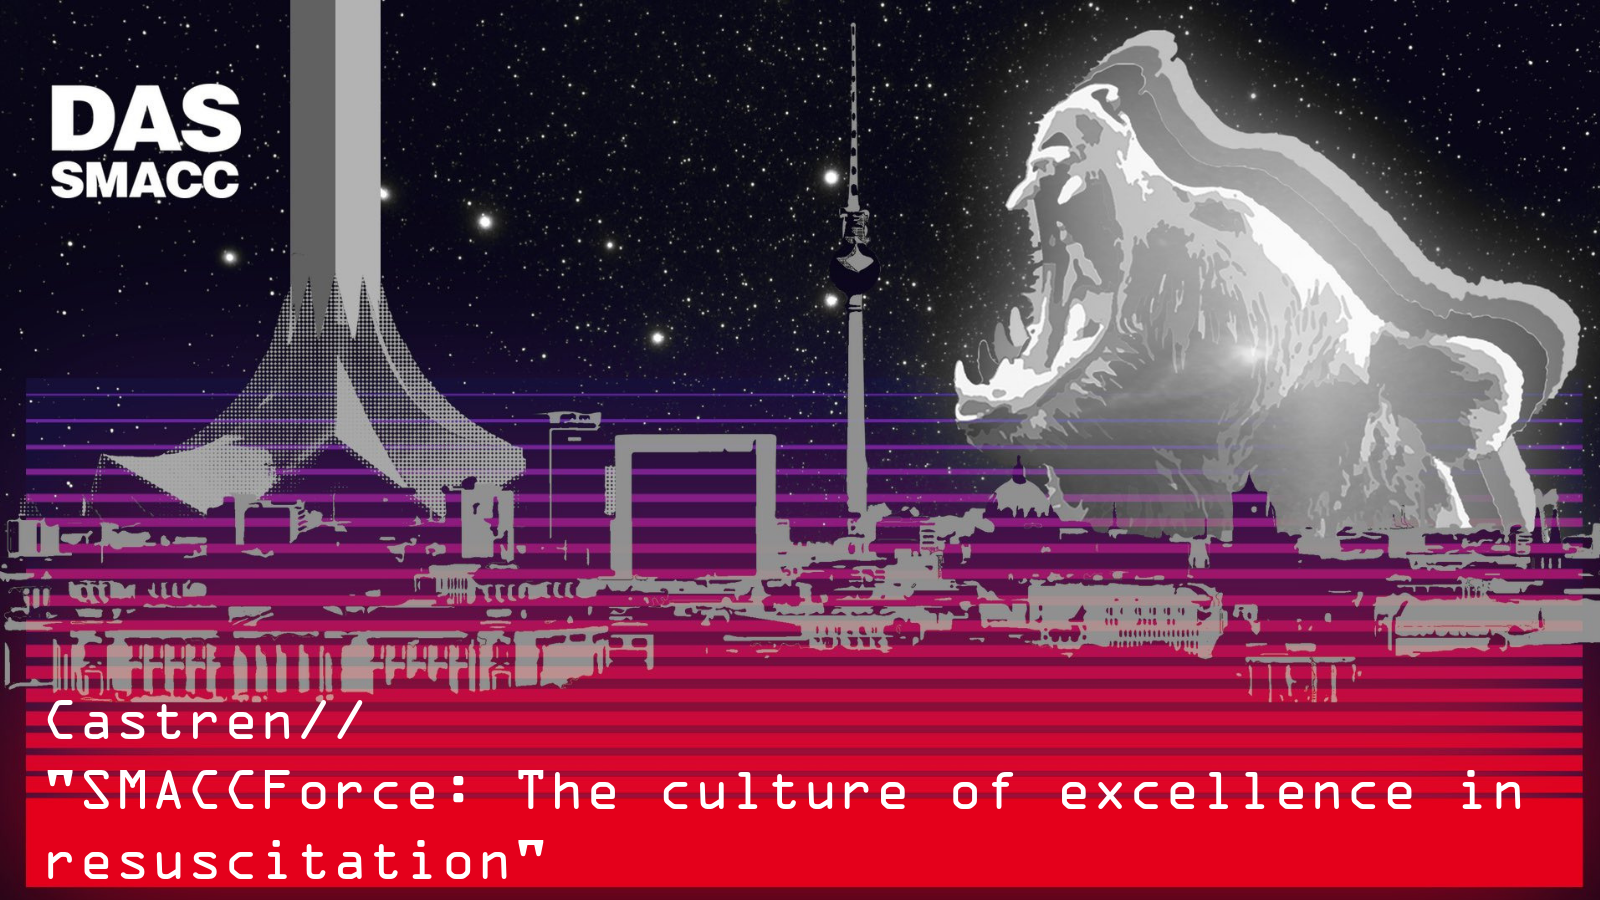 The culture of excellence in resuscitation